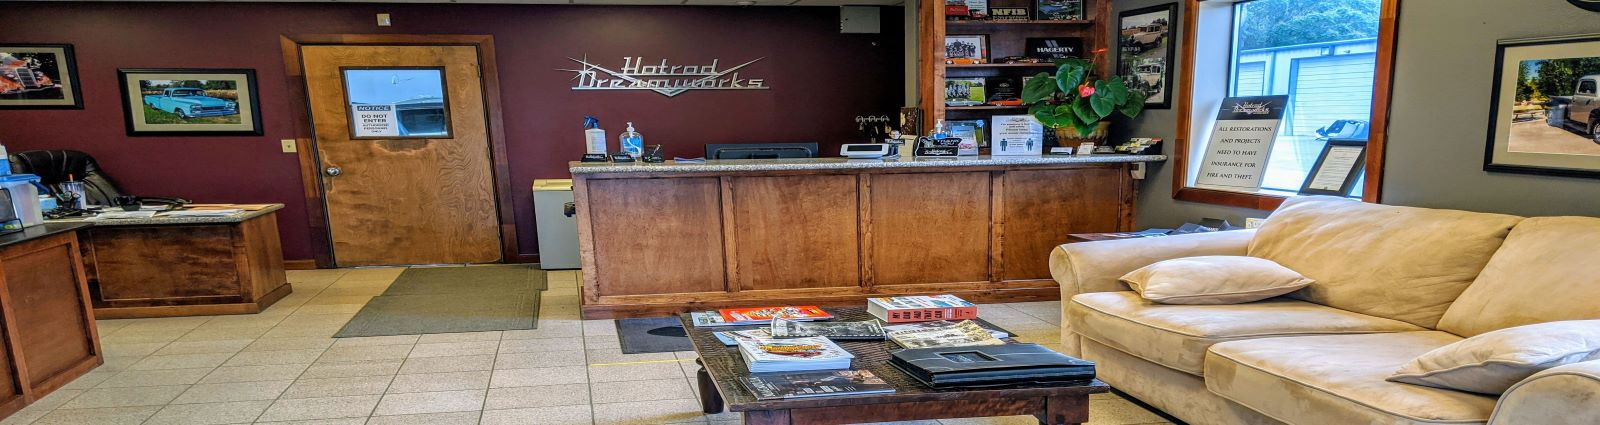 Hot Rod Dreamworks & Collision Repair interior